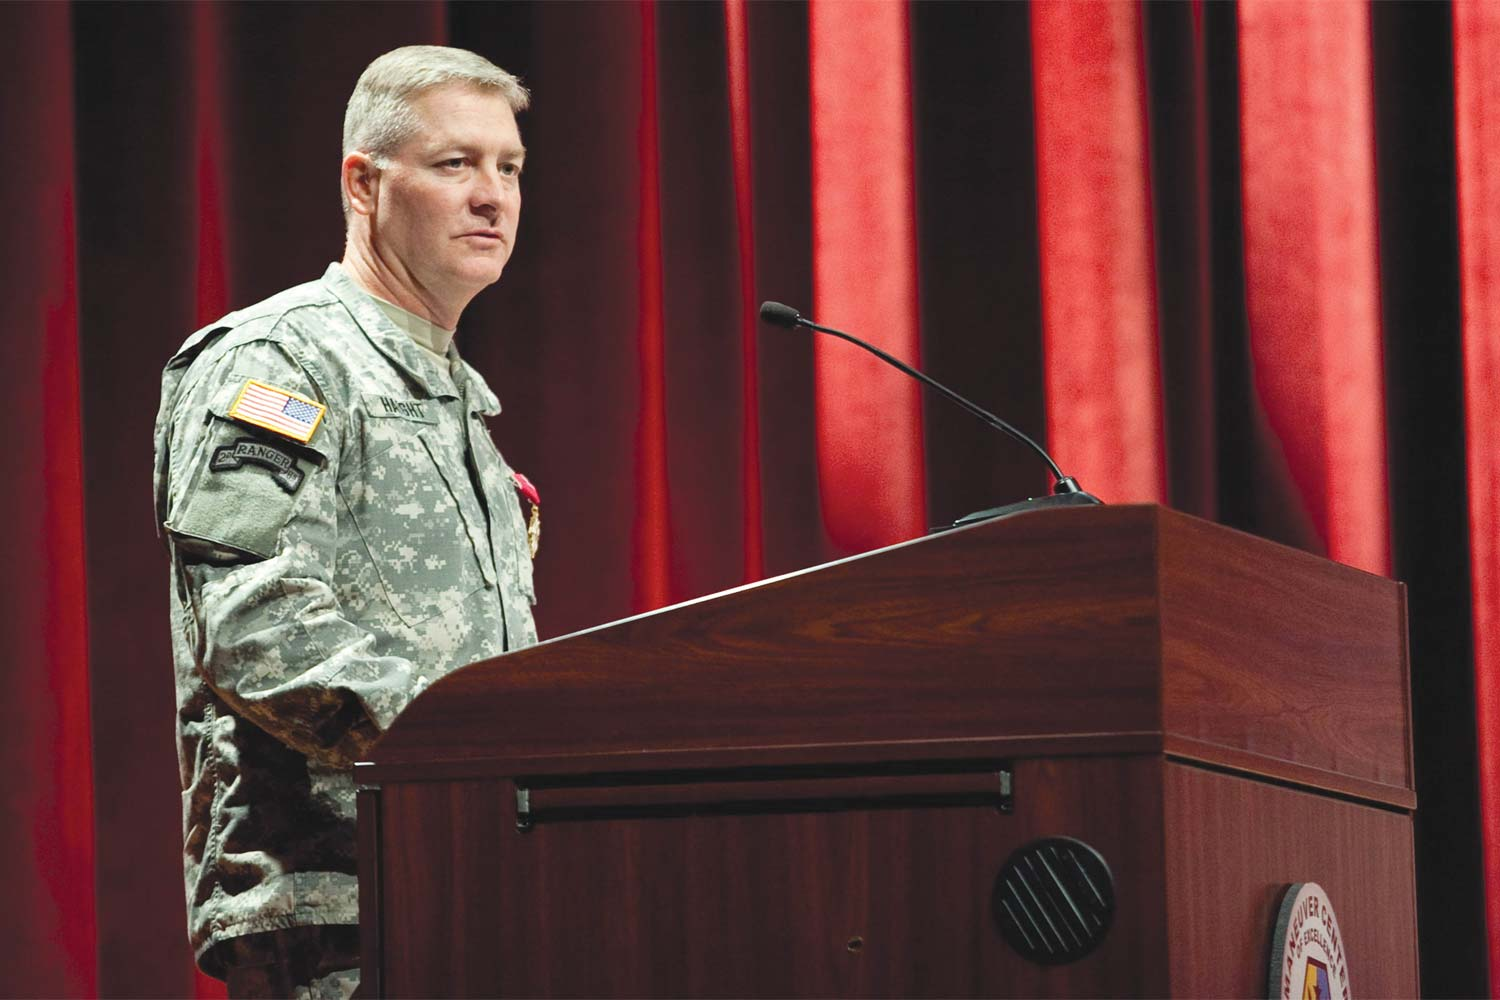 TwoStar General Demoted After Affair  Militarycom